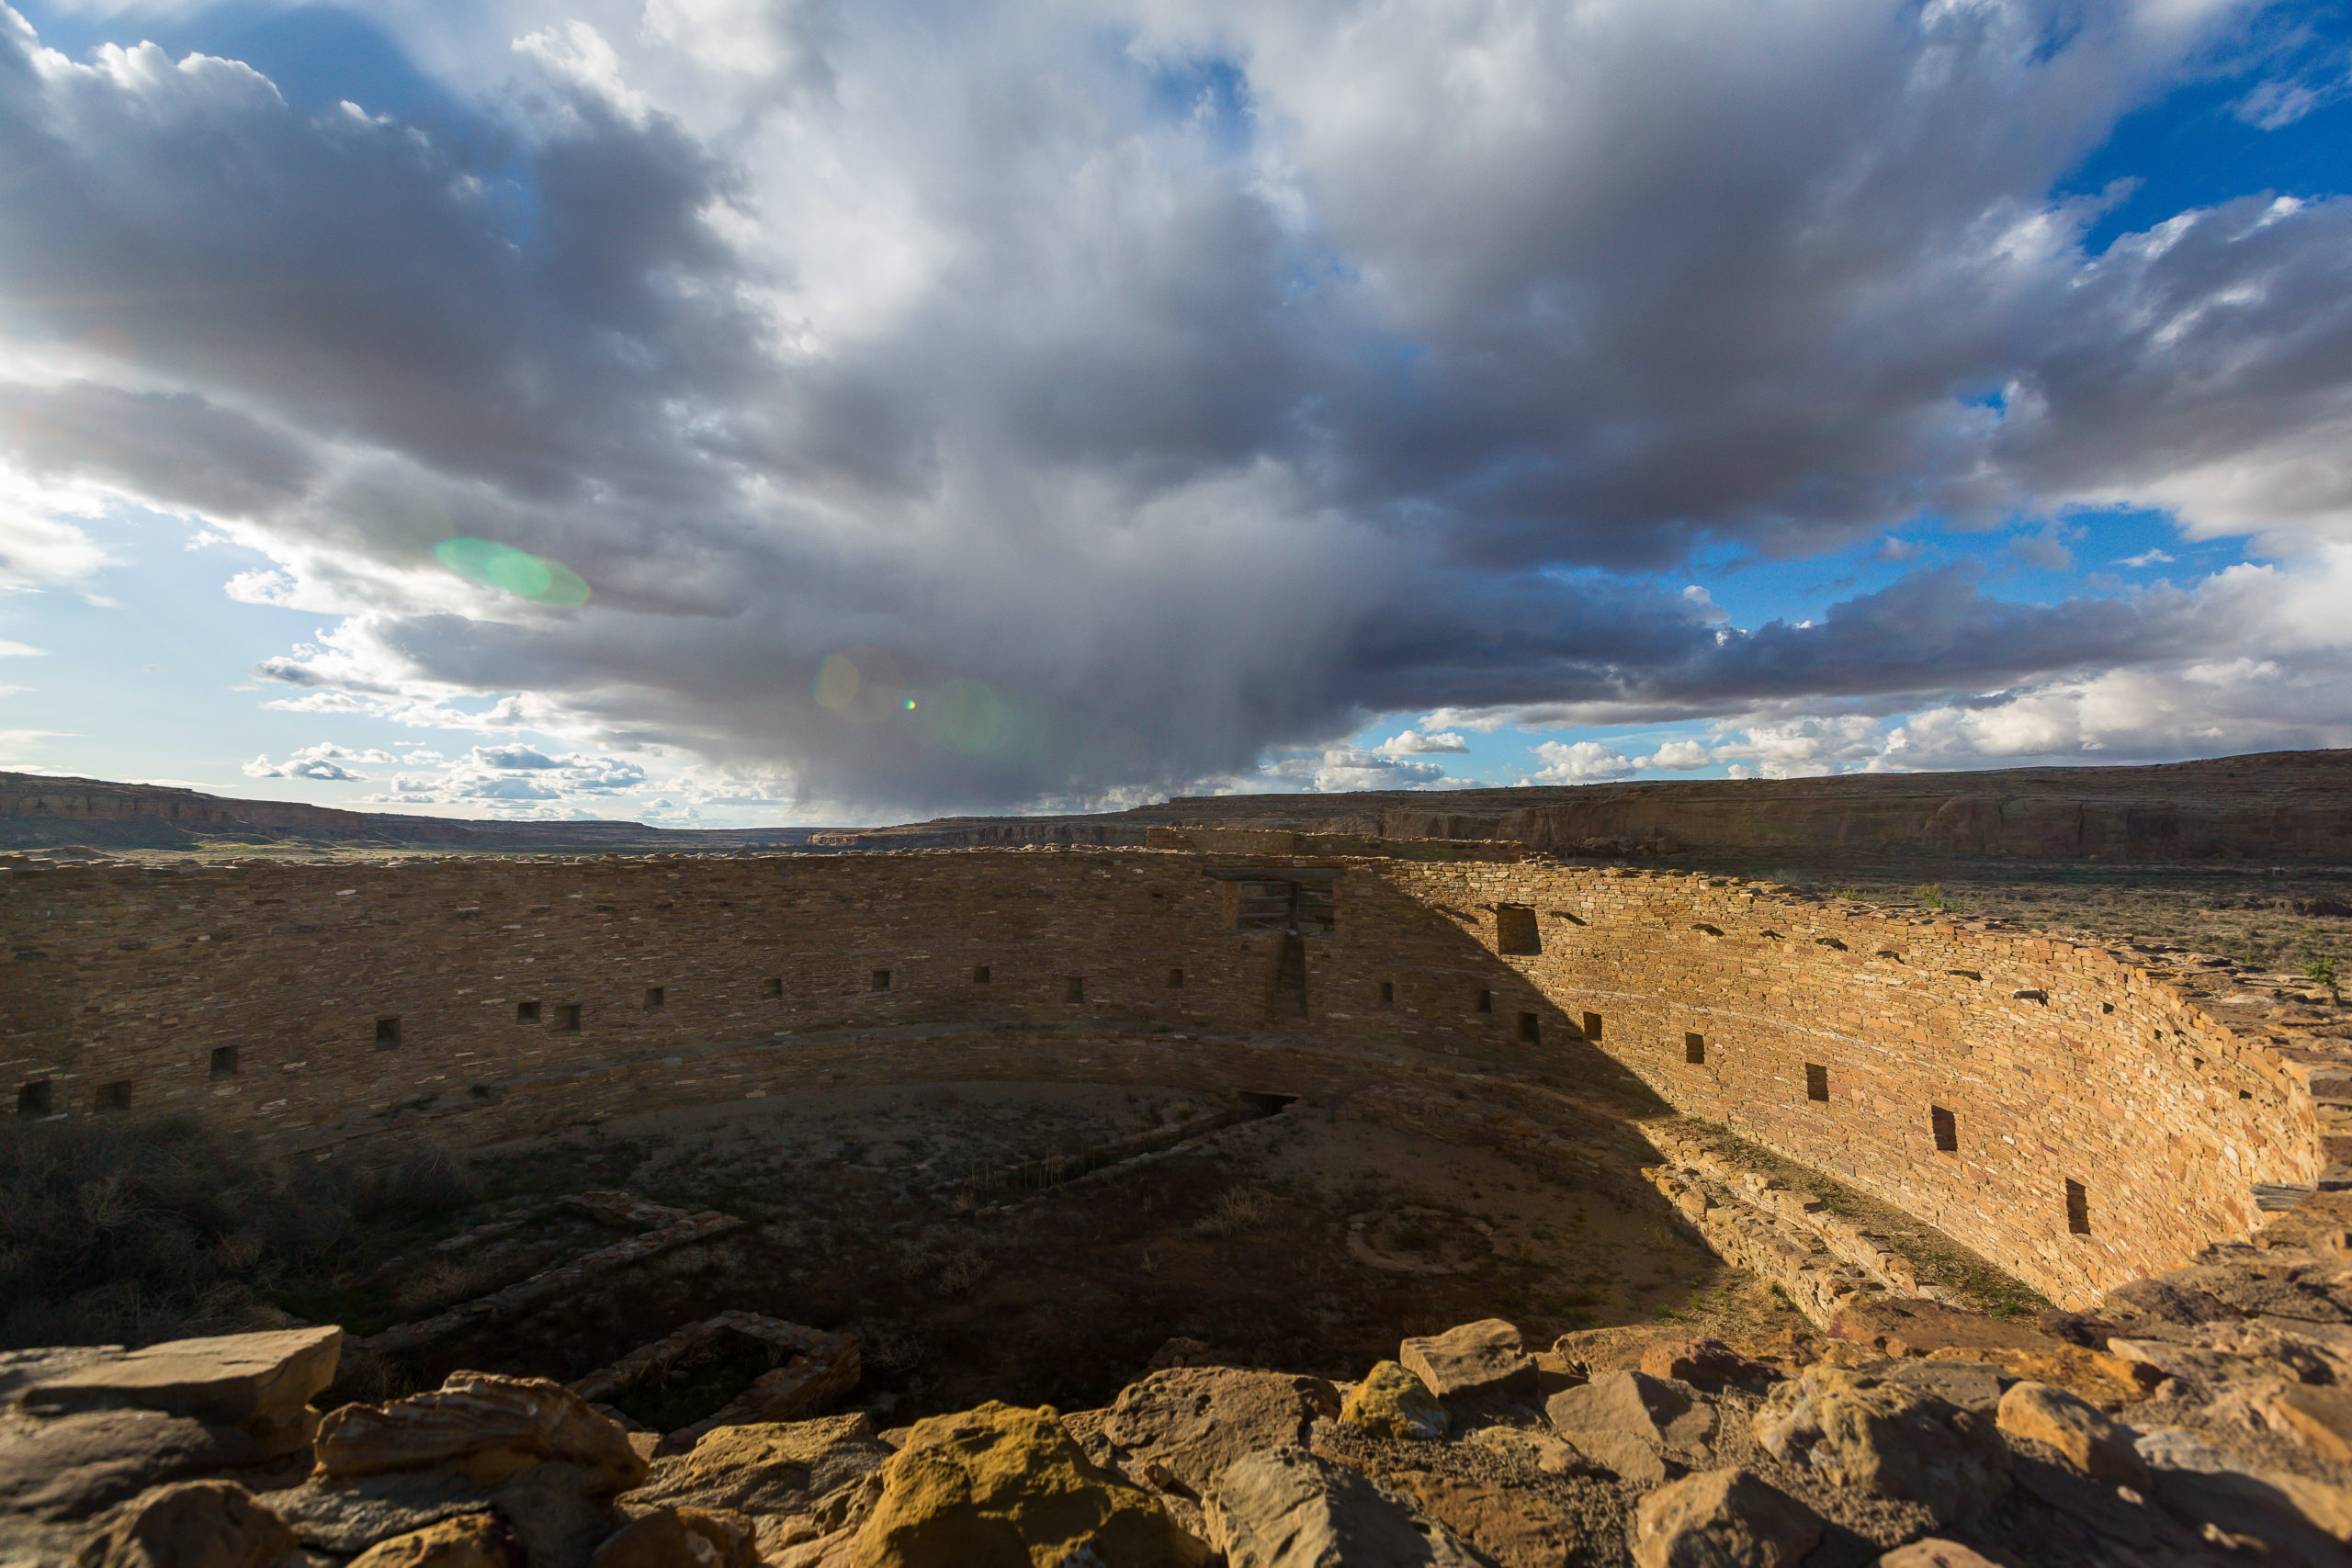 chaco canyon south mesa trail